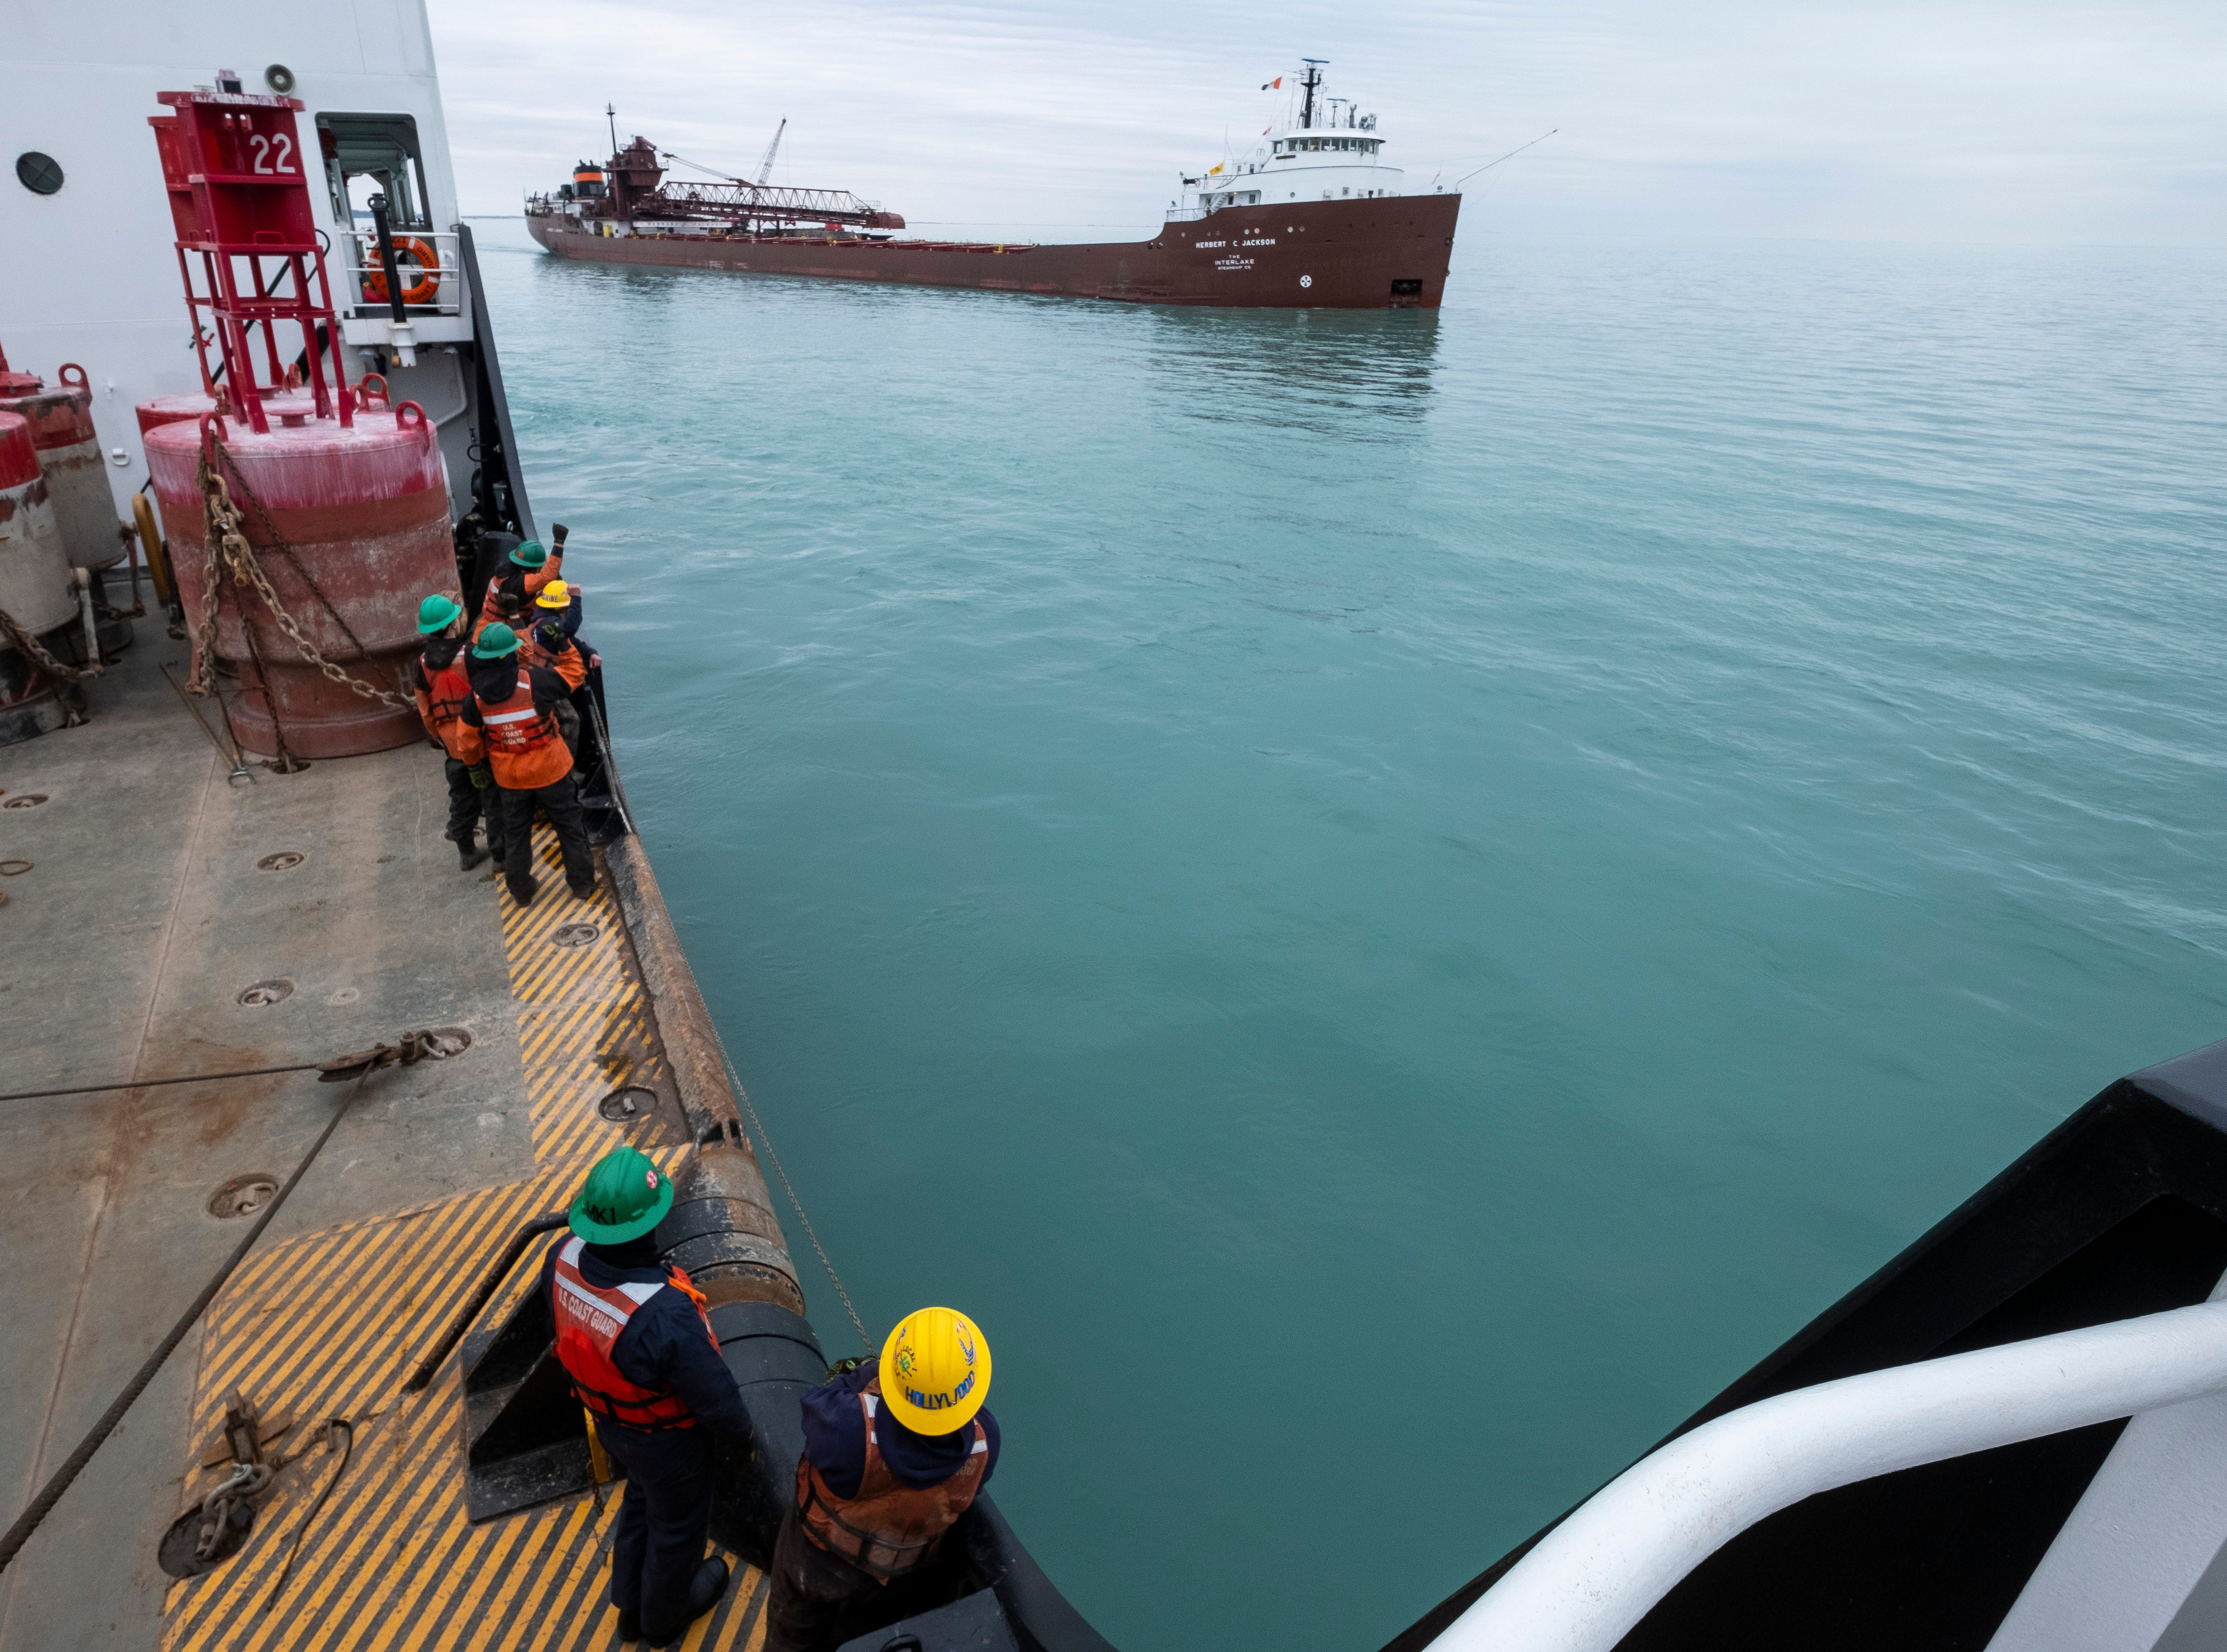 """Crewmembers on the USCGC Hollyhock's buoy deck shout """"toot it!"""" to the passing Herbert C. Jackson freighter while making gestures to the ship's crew to blow its horn Thursday, April 25, 2019 on Lake St. Clair."""